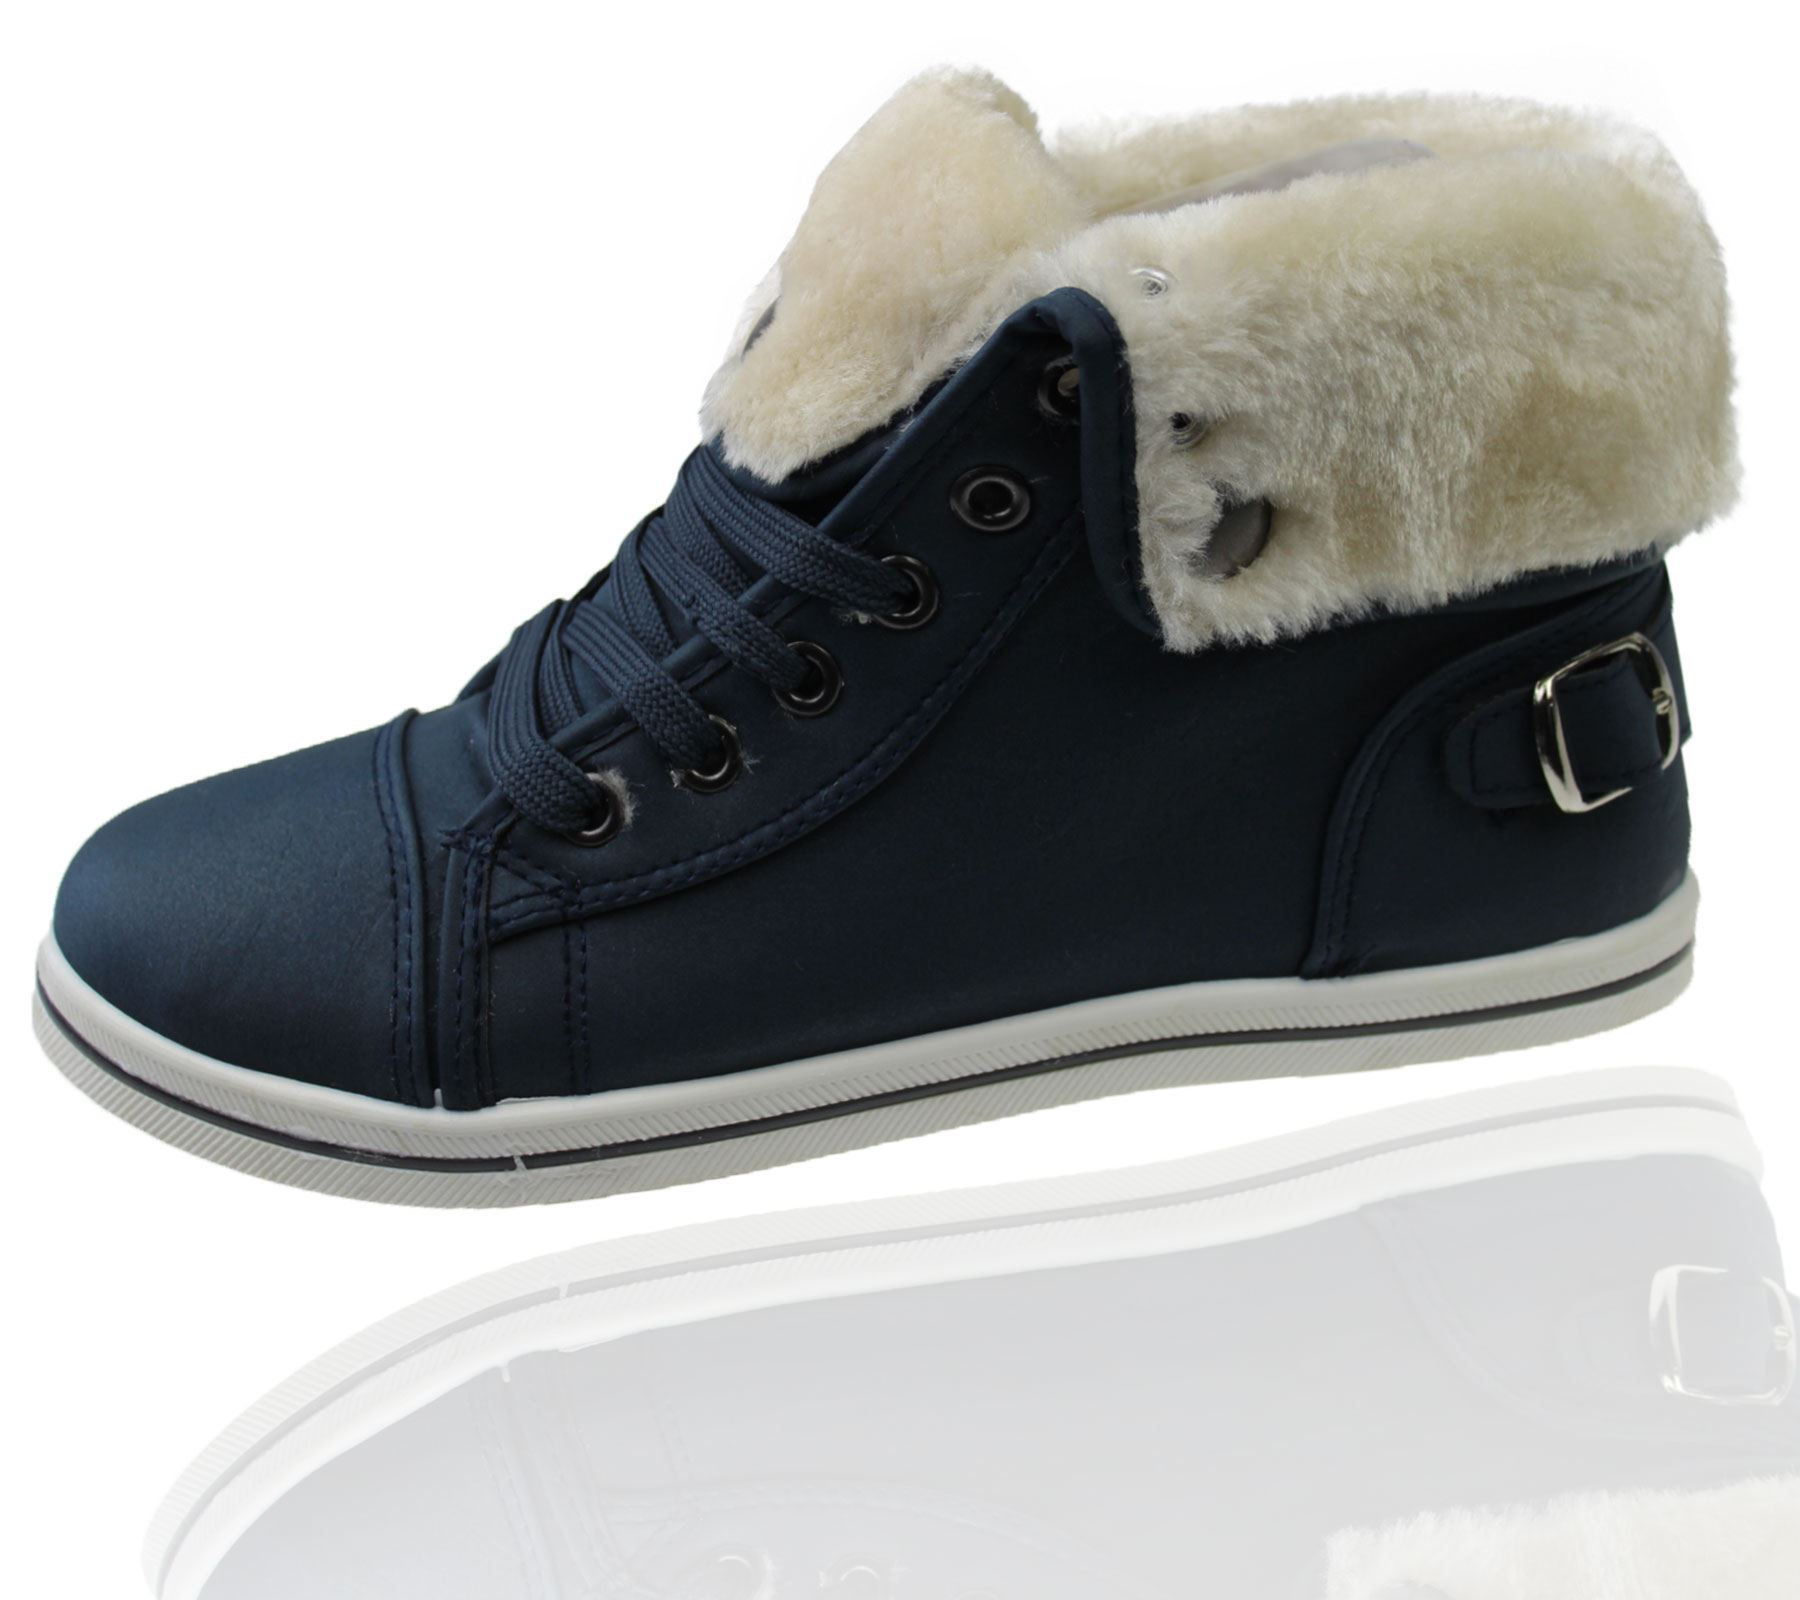 Girls-Boots-Womens-Warm-Lined-High-Top-Ankle-Trainer-Ladies-Winter-Shoes-Size miniatura 25